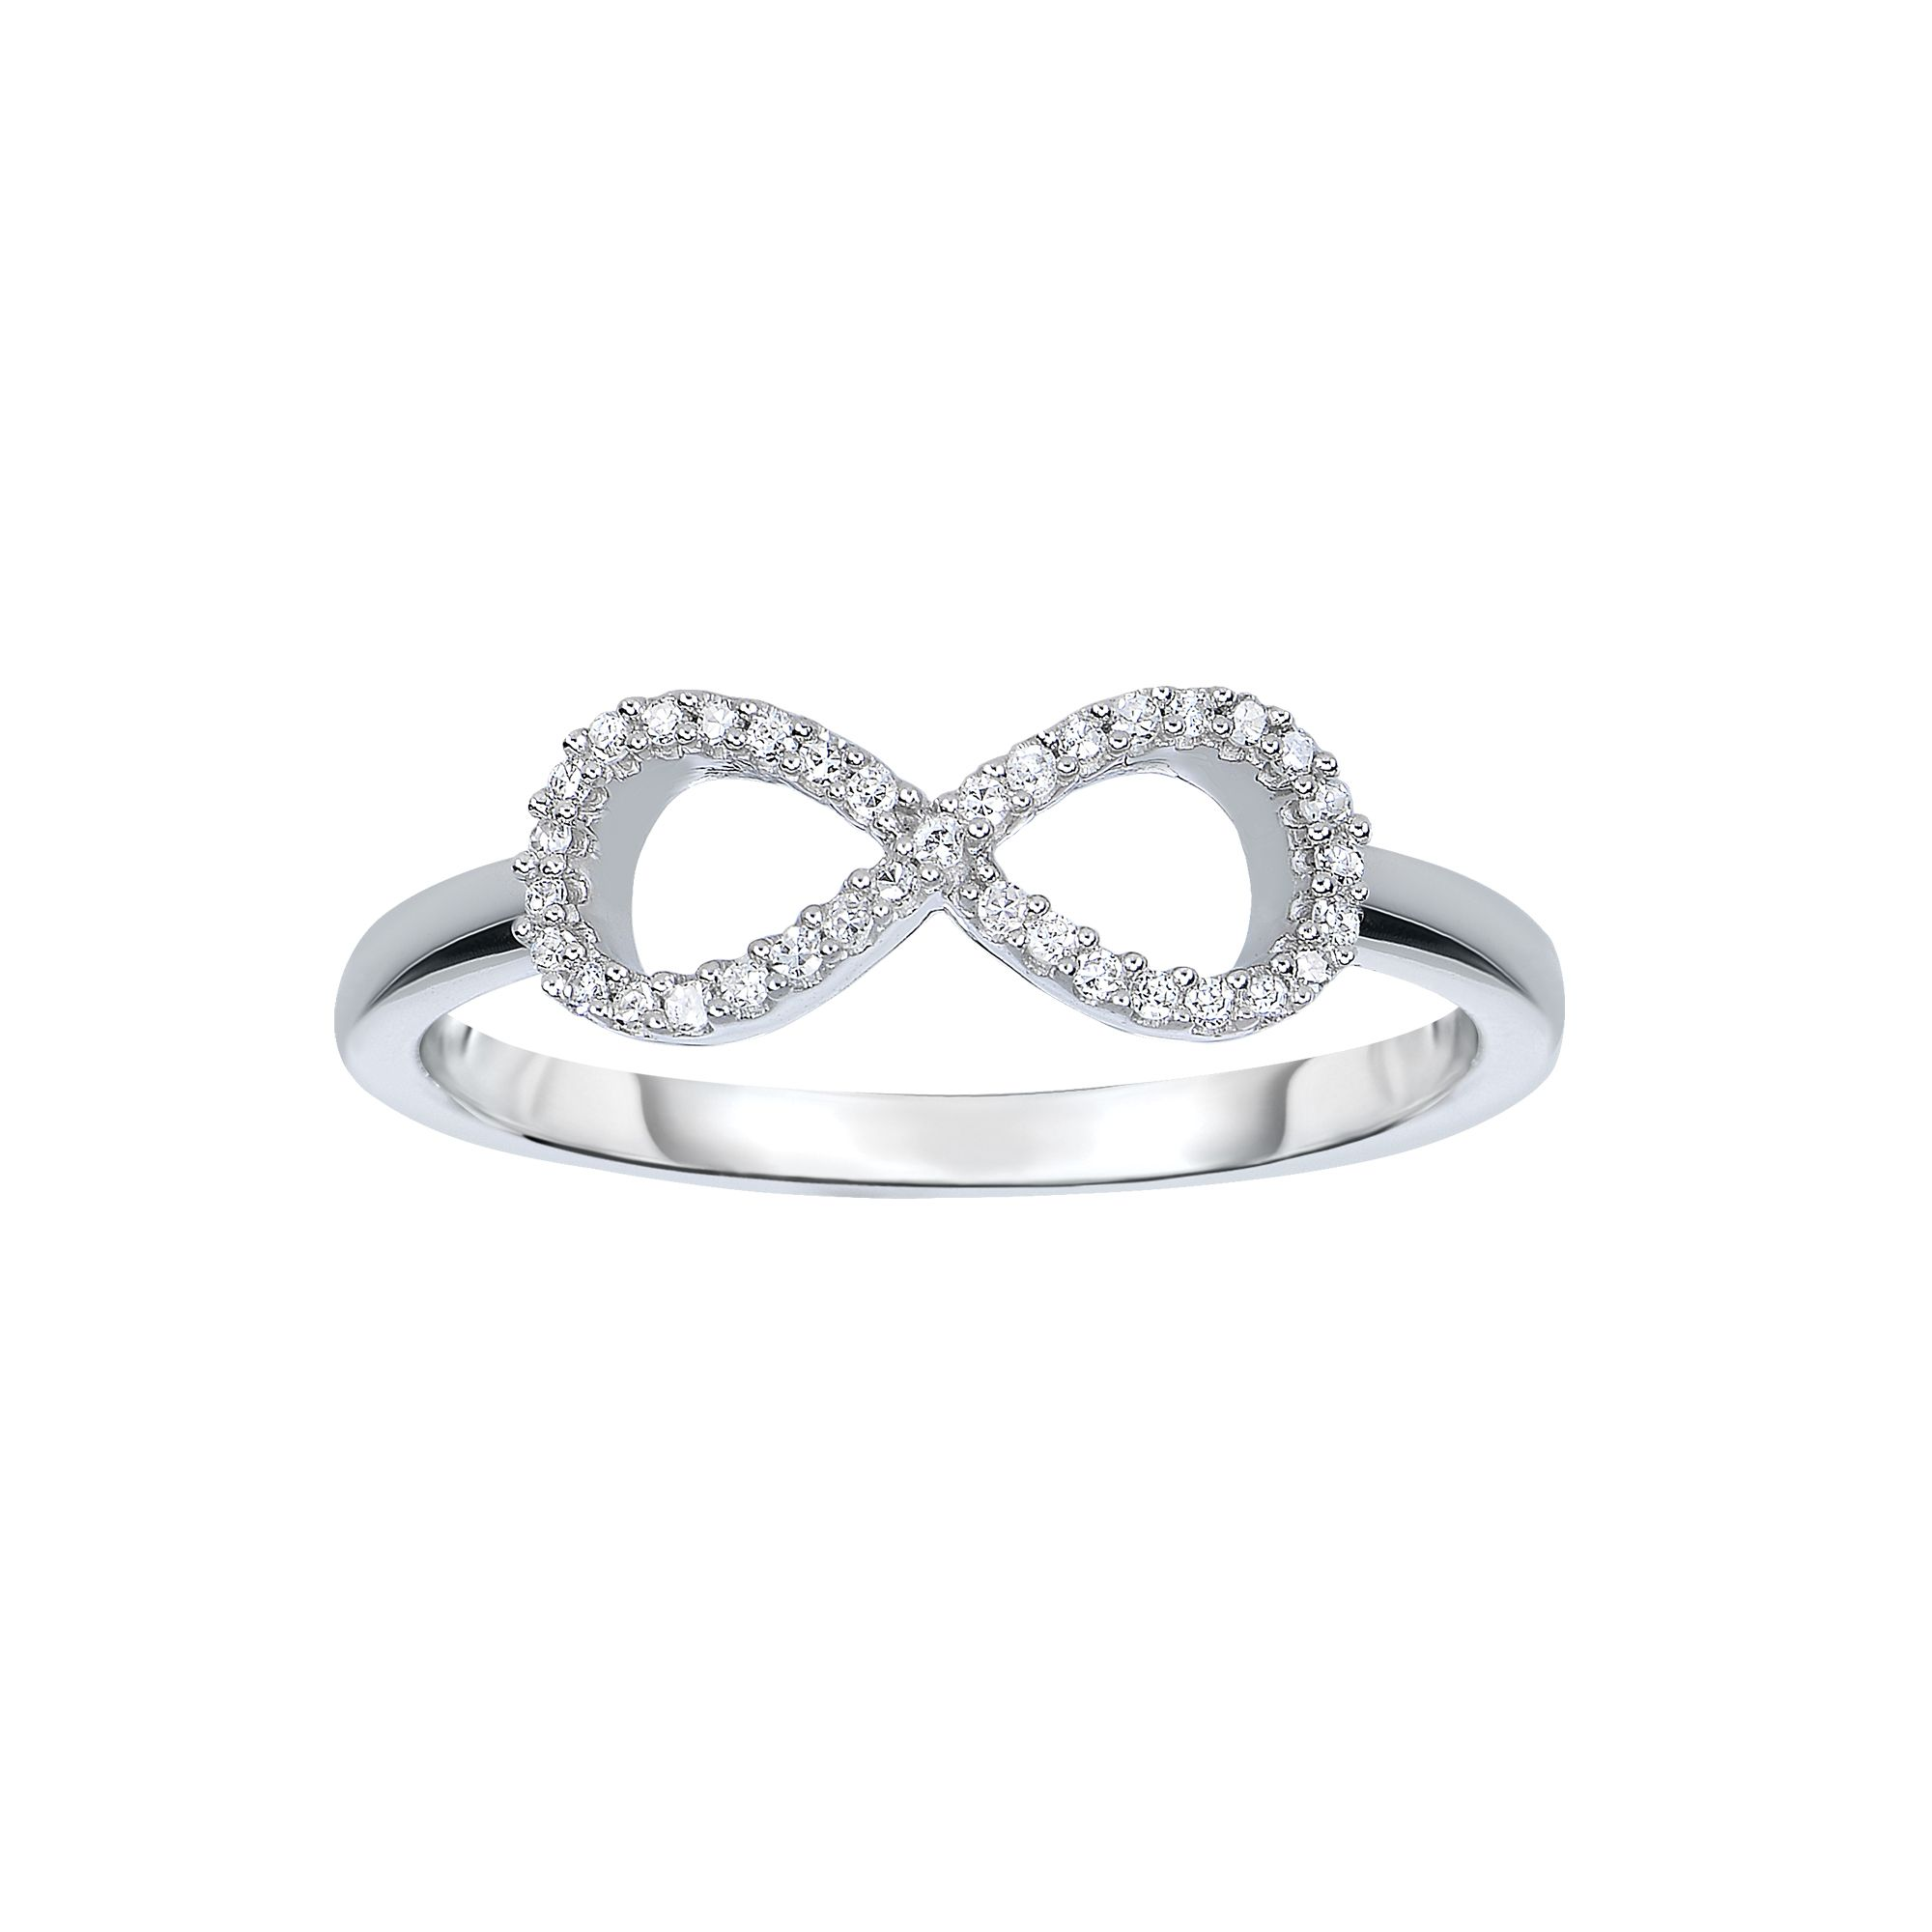 14 Karat White Gold Diamond Infinity Ring